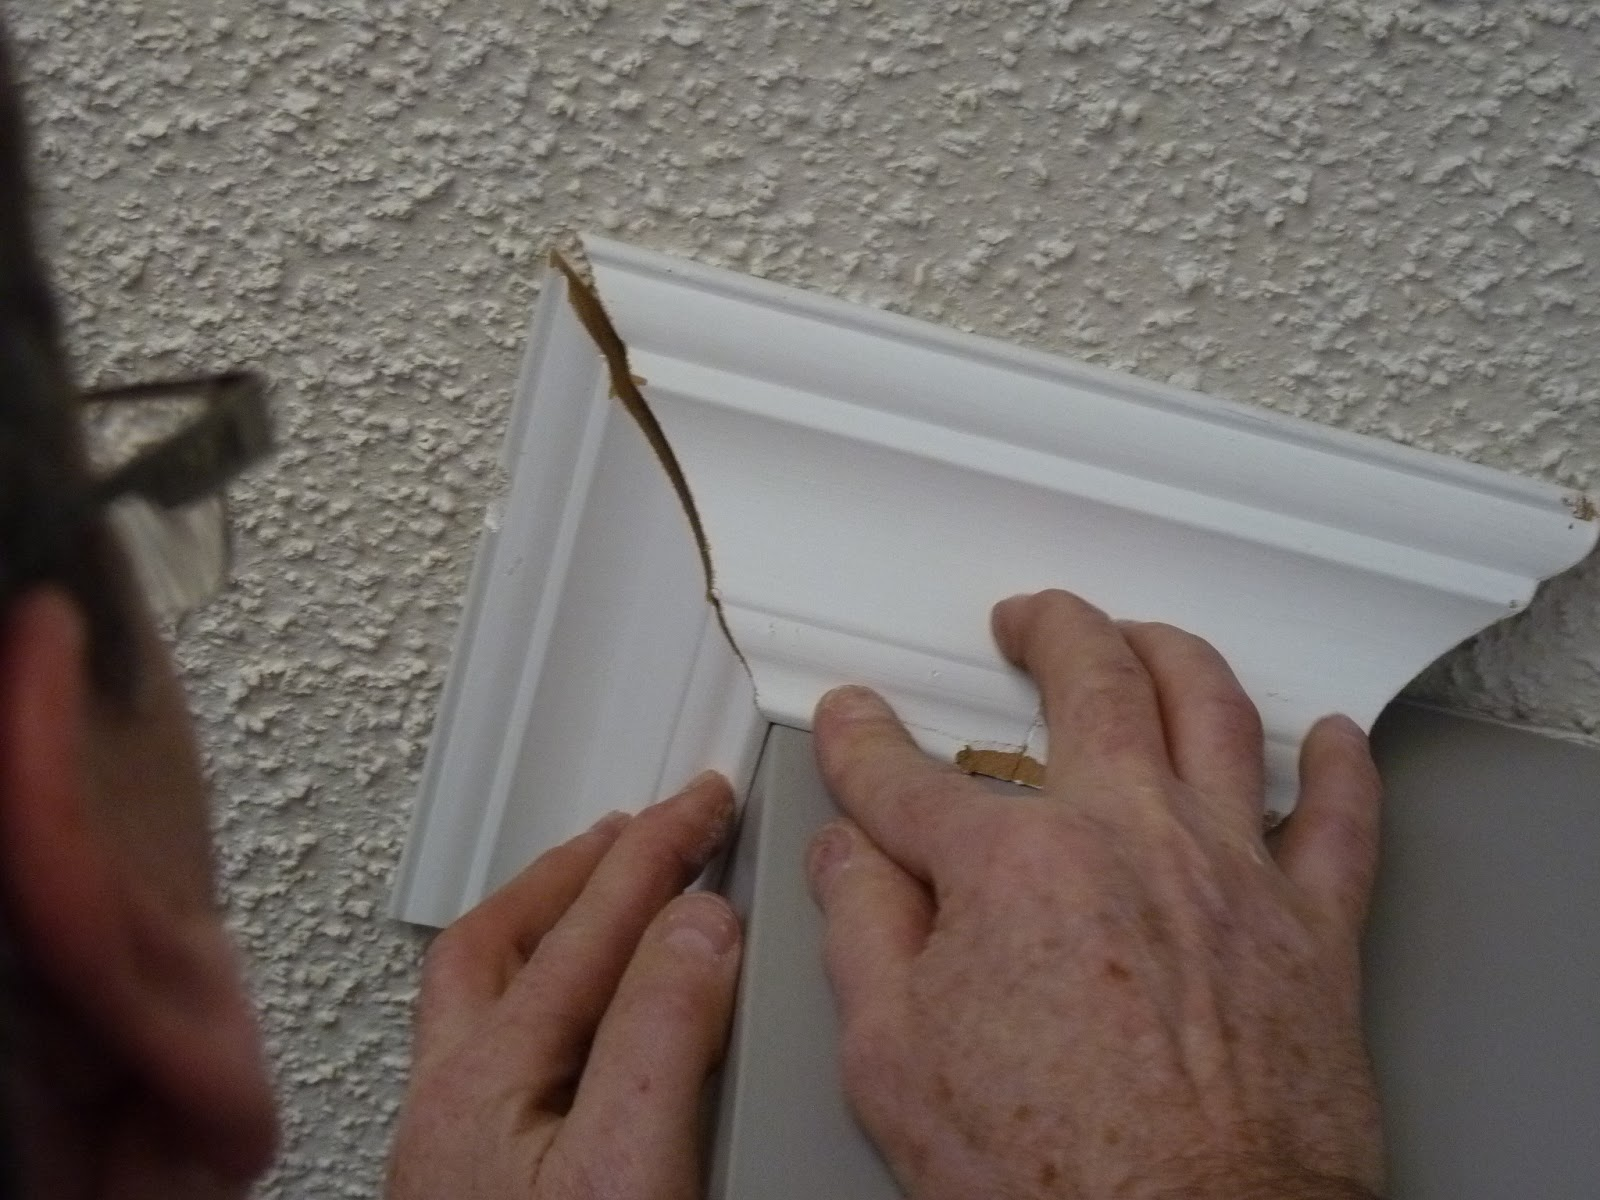 d i y d e s i g n: Cutting and Installing Crown Molding